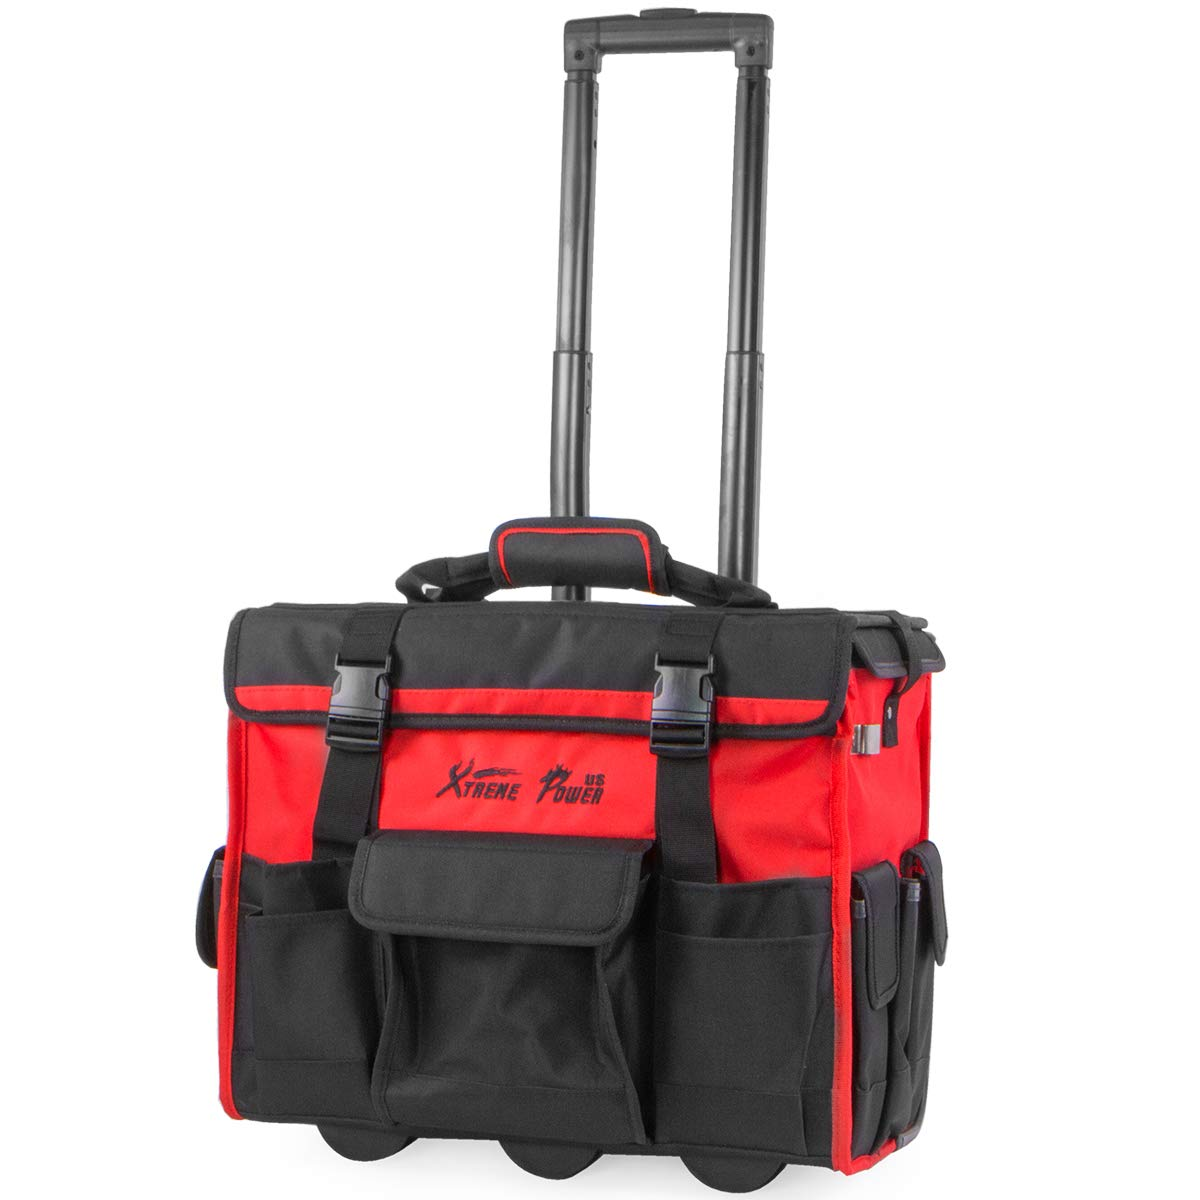 XtremepowerUS Rolling Tool Bag Organizer with Telescoping Handle 18'' Wide Storage Organizer Bag Heavy Duty with Wheels by XtremepowerUS